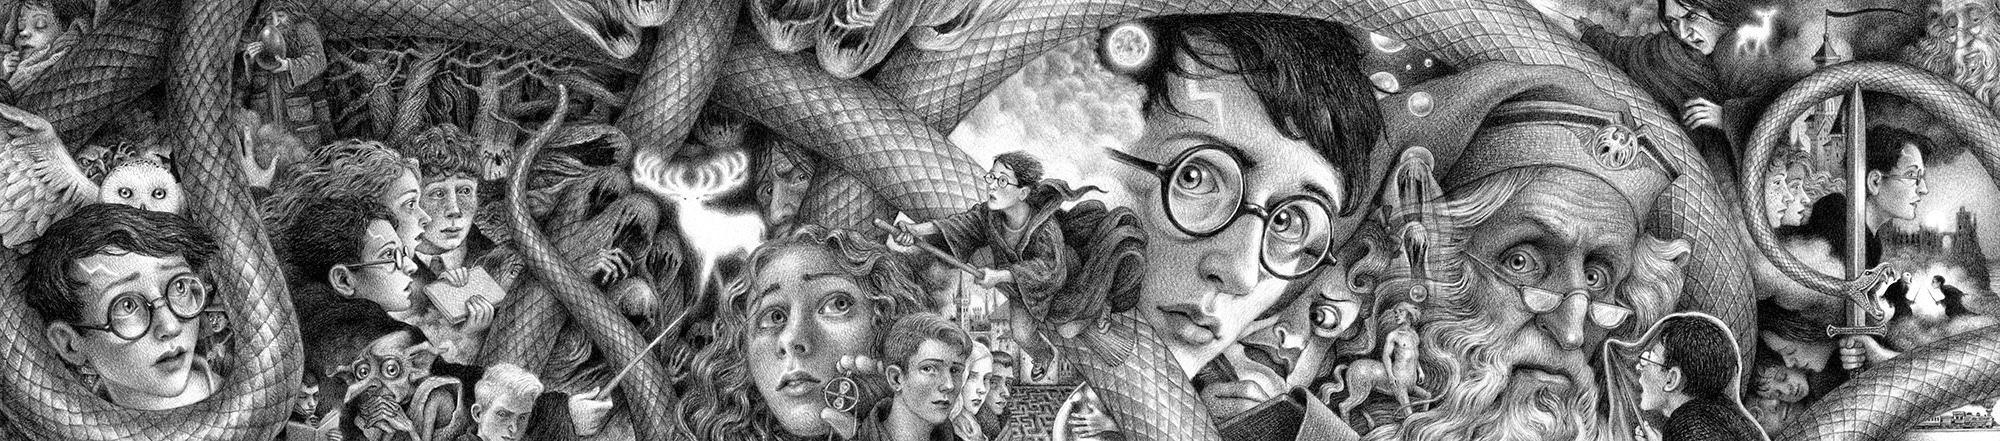 Brian Selznick's 'Harry Potter' covers.